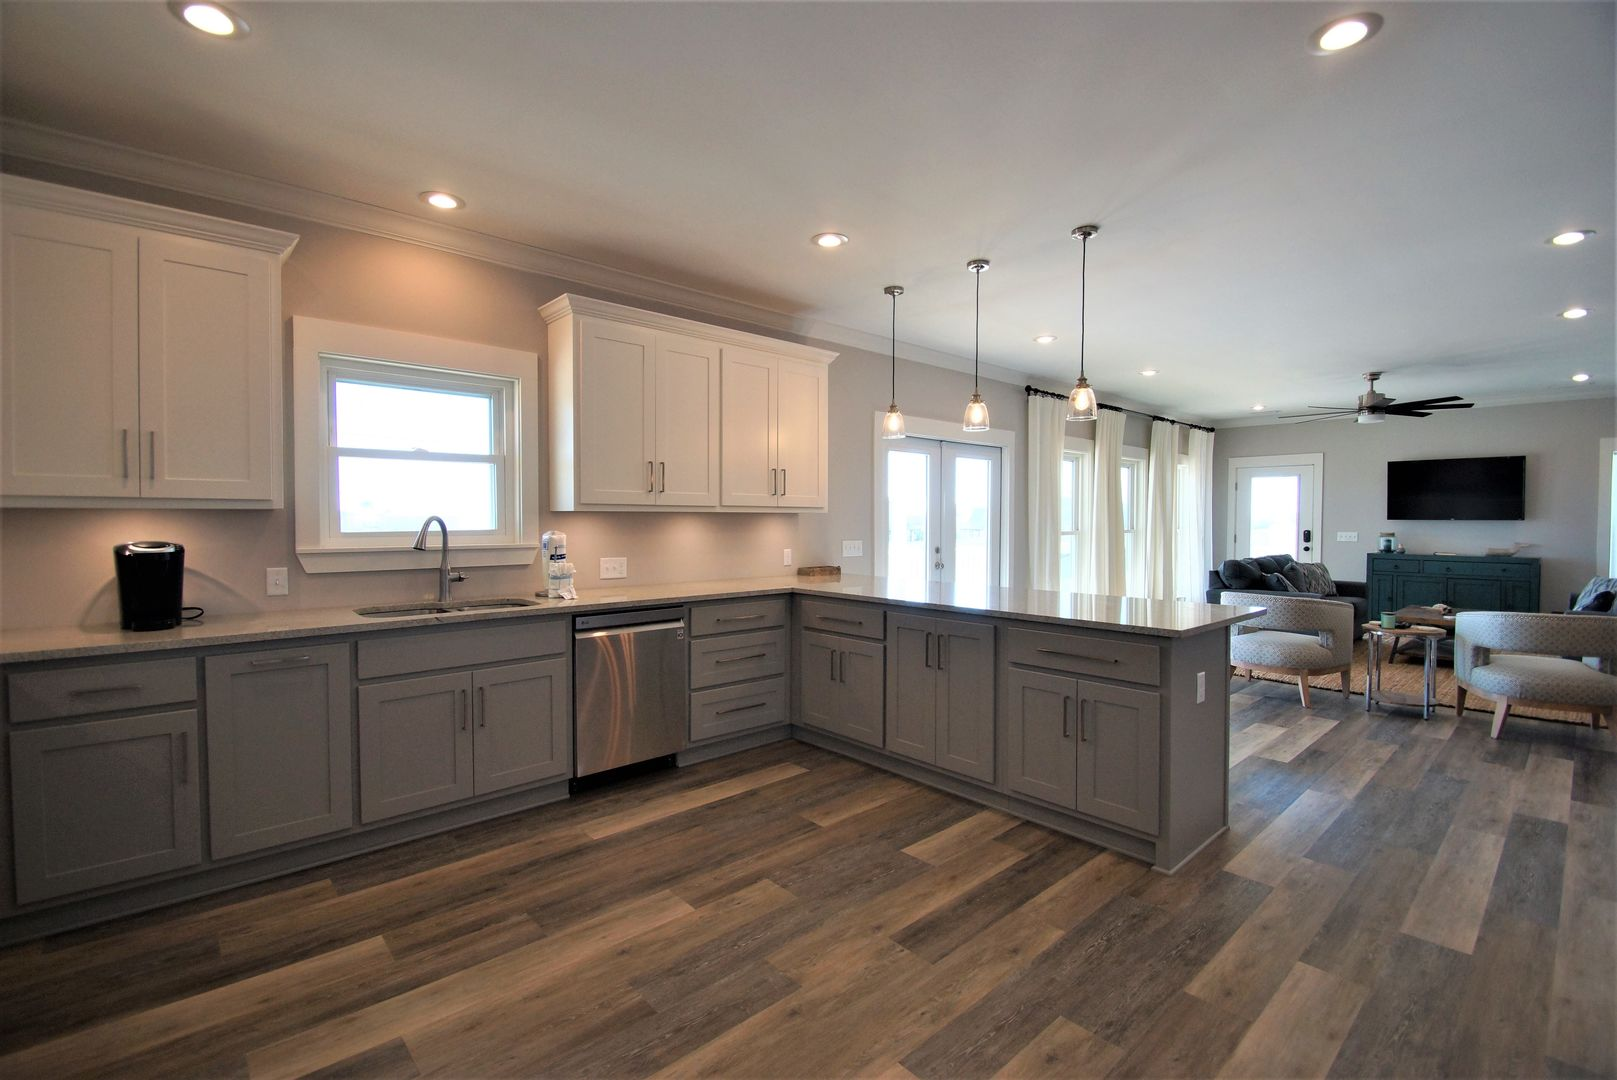 Prepare a meal in the large fully equipped kitchen, complete with modern appliances.